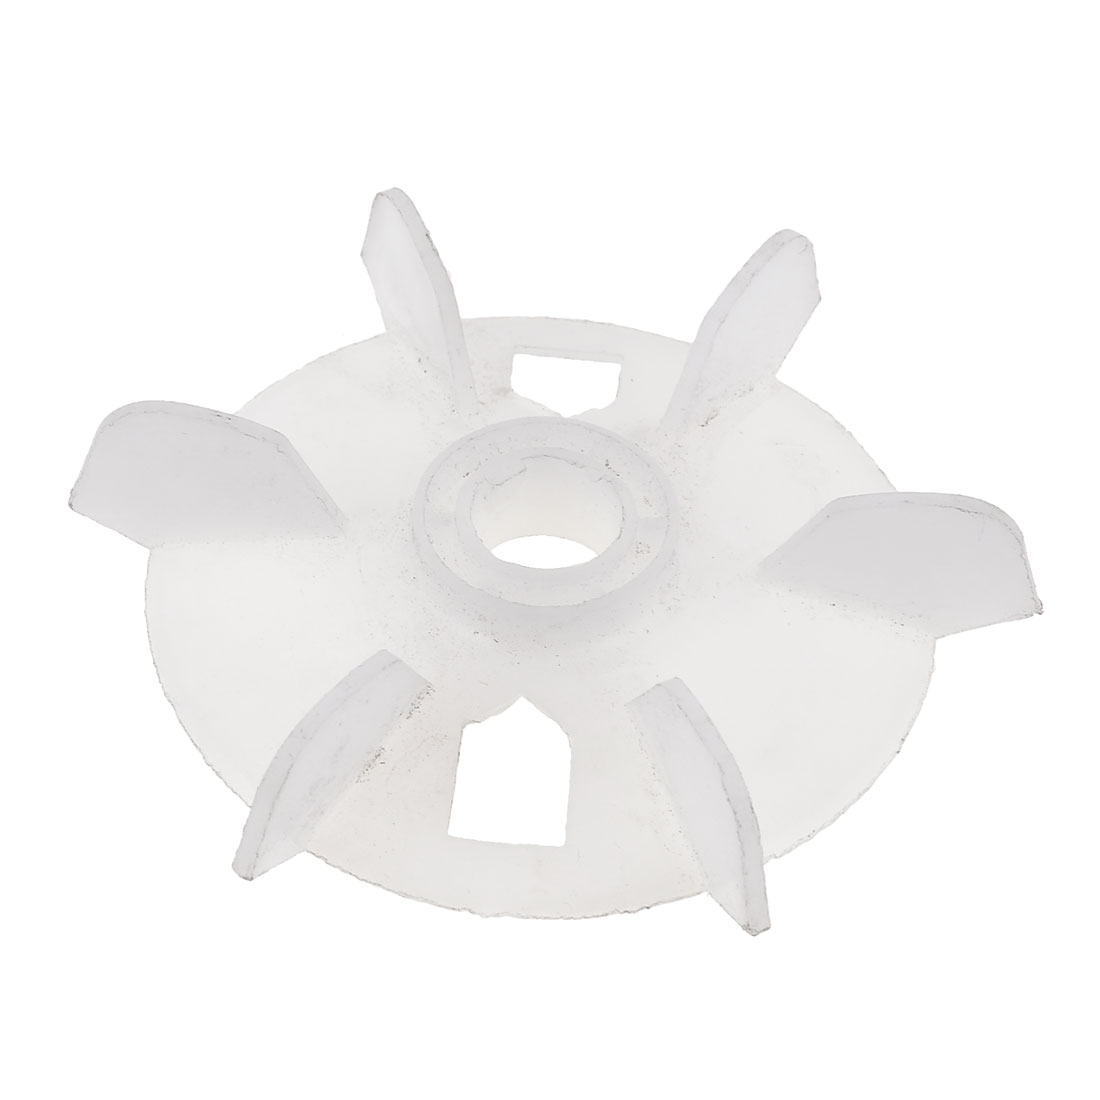 Y80 Replacement White Plastic Inner Dia 1.9cm Six Impeller Motor Fan Vane